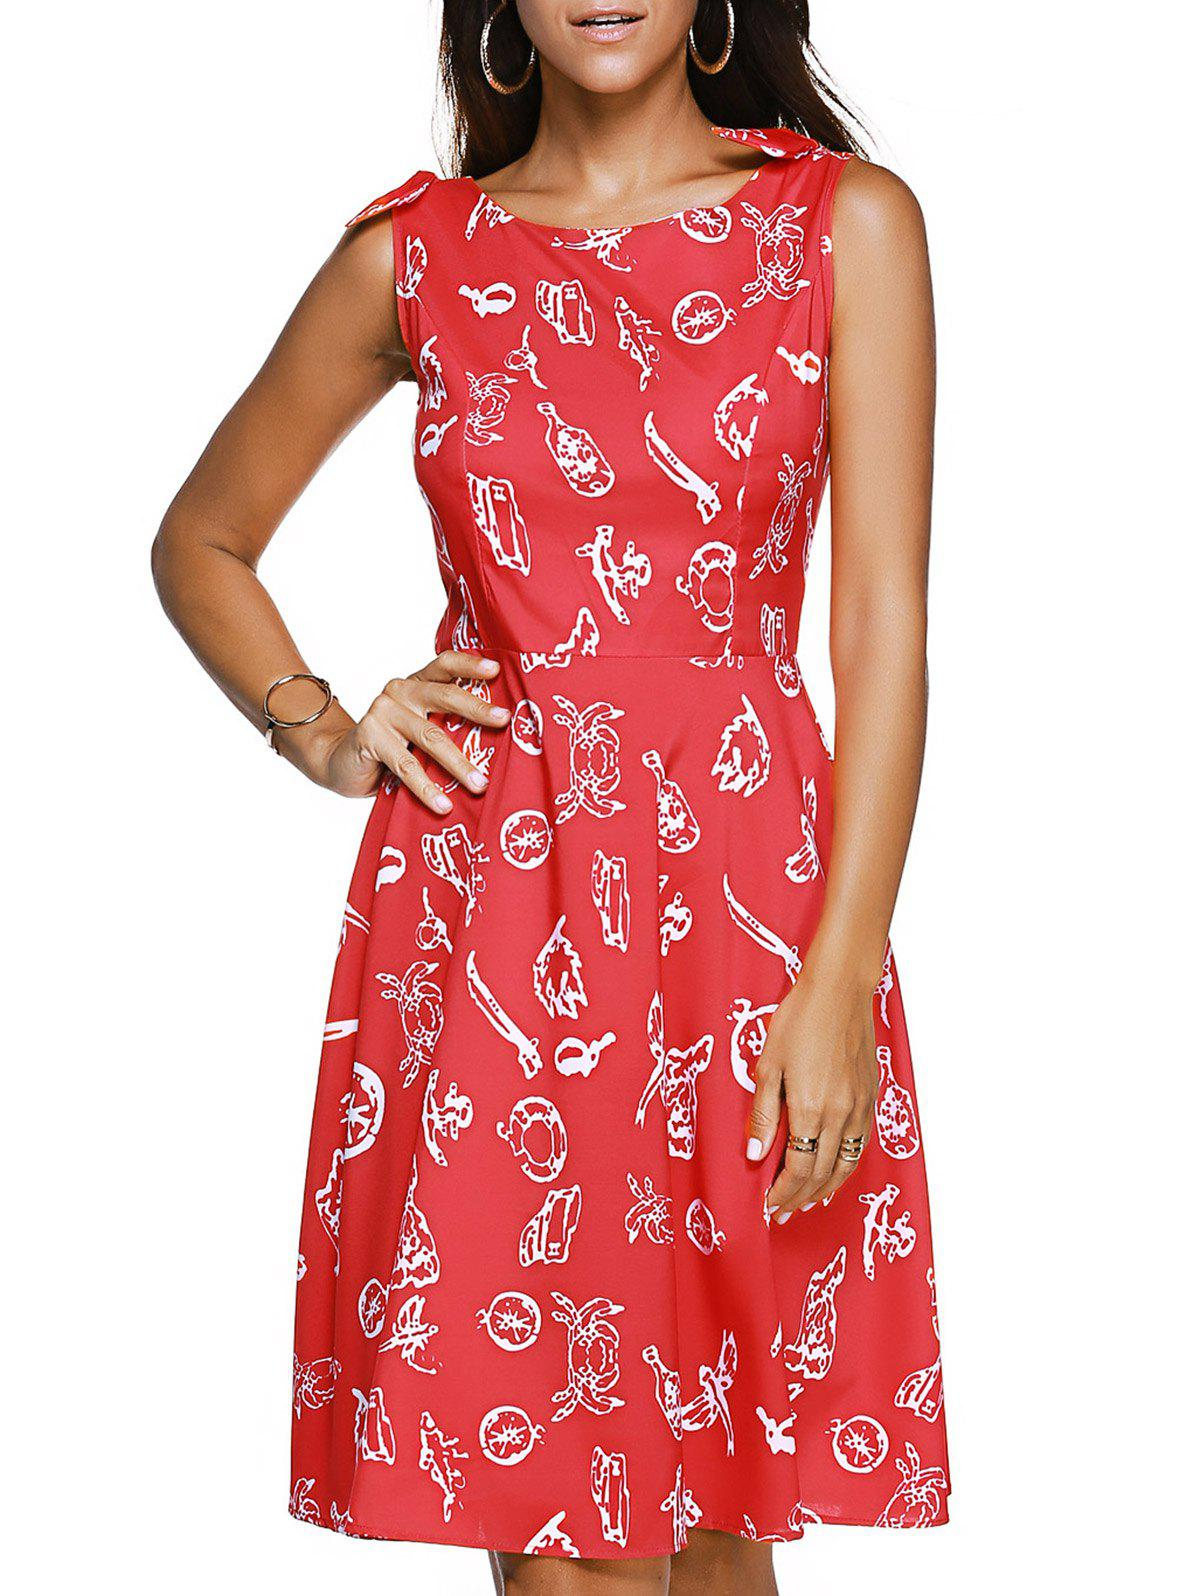 Sleeveless Bow Embellished Print Vintage Women's Dress - RED XL